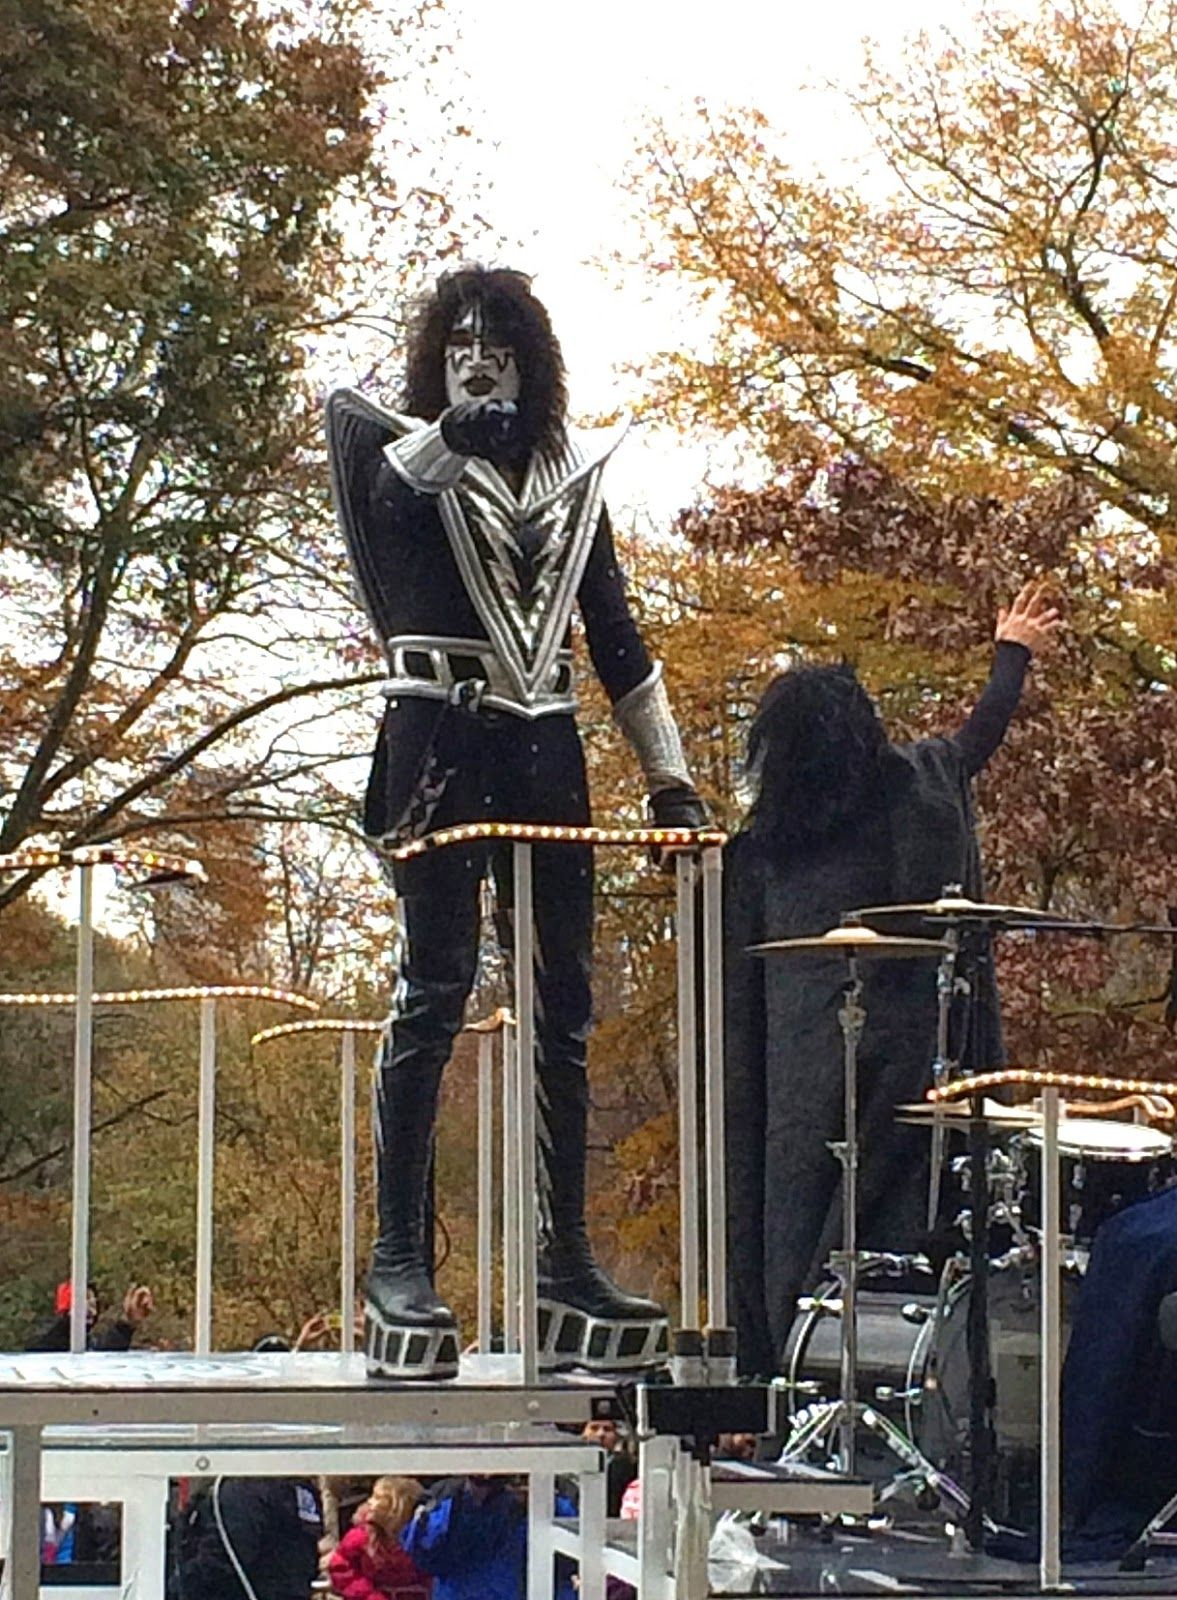 A Member Of Kiss At The 88th Annual Macy S Thanksgiving Day Parade In New York City Thanksgiving Day Parade Macy S Thanksgiving Day Parade Thanksgiving Day